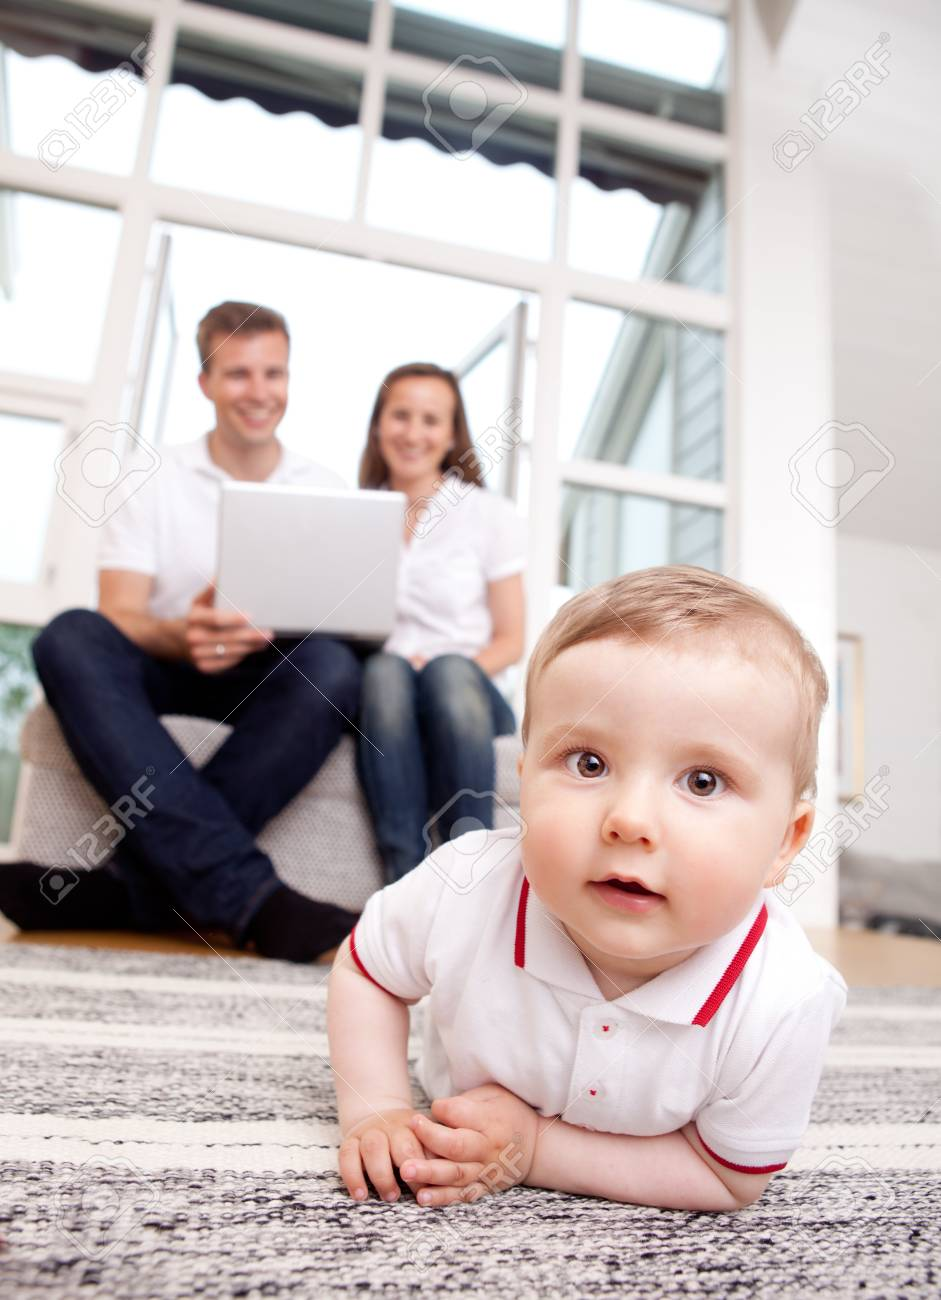 A happy curious young baby boy with parents in the background using computer Stock Photo - 10393414